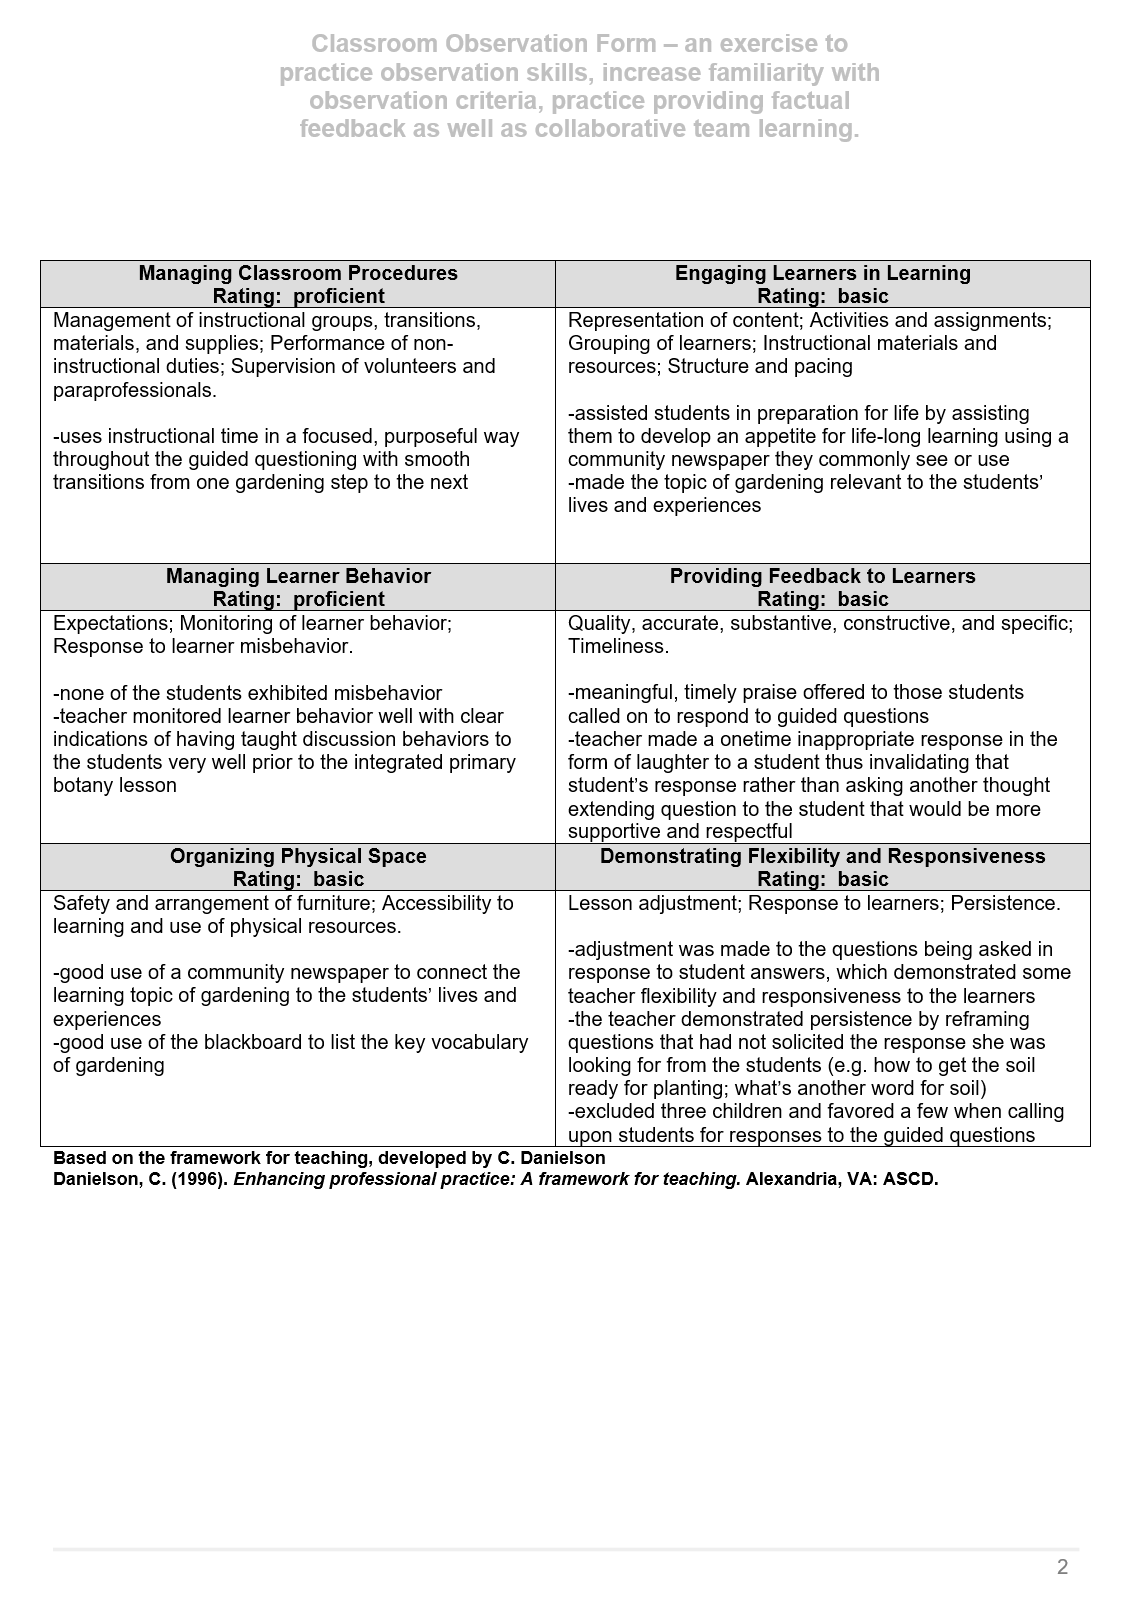 classroom-observation-pg-2-of-3.png